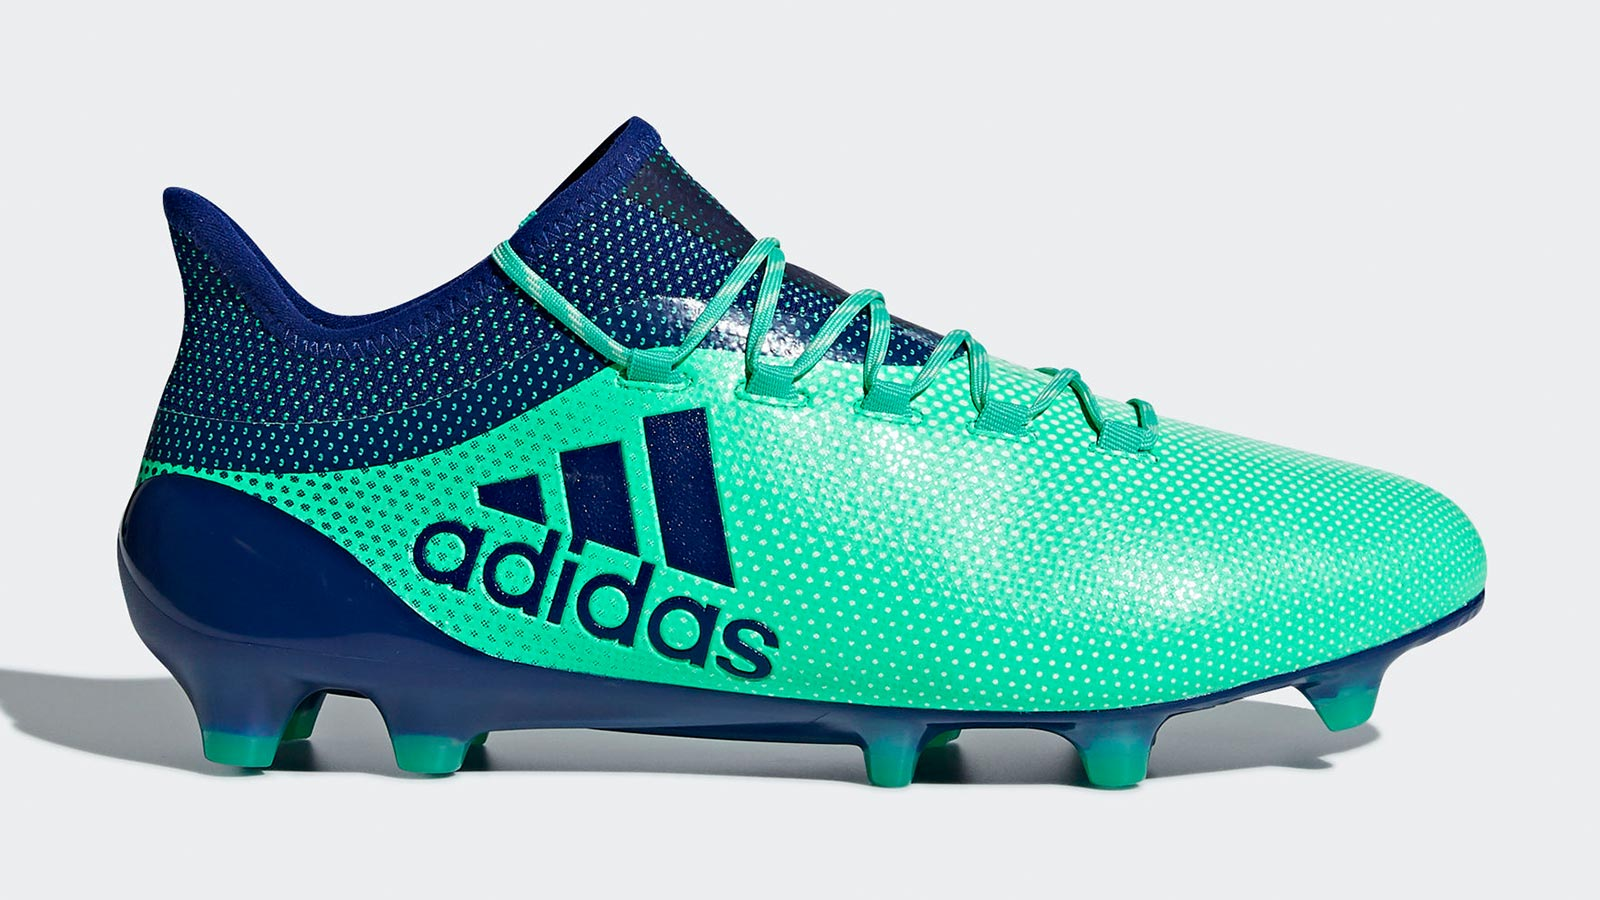 deadly strike adidas x 17 1 2018 boots released footy. Black Bedroom Furniture Sets. Home Design Ideas